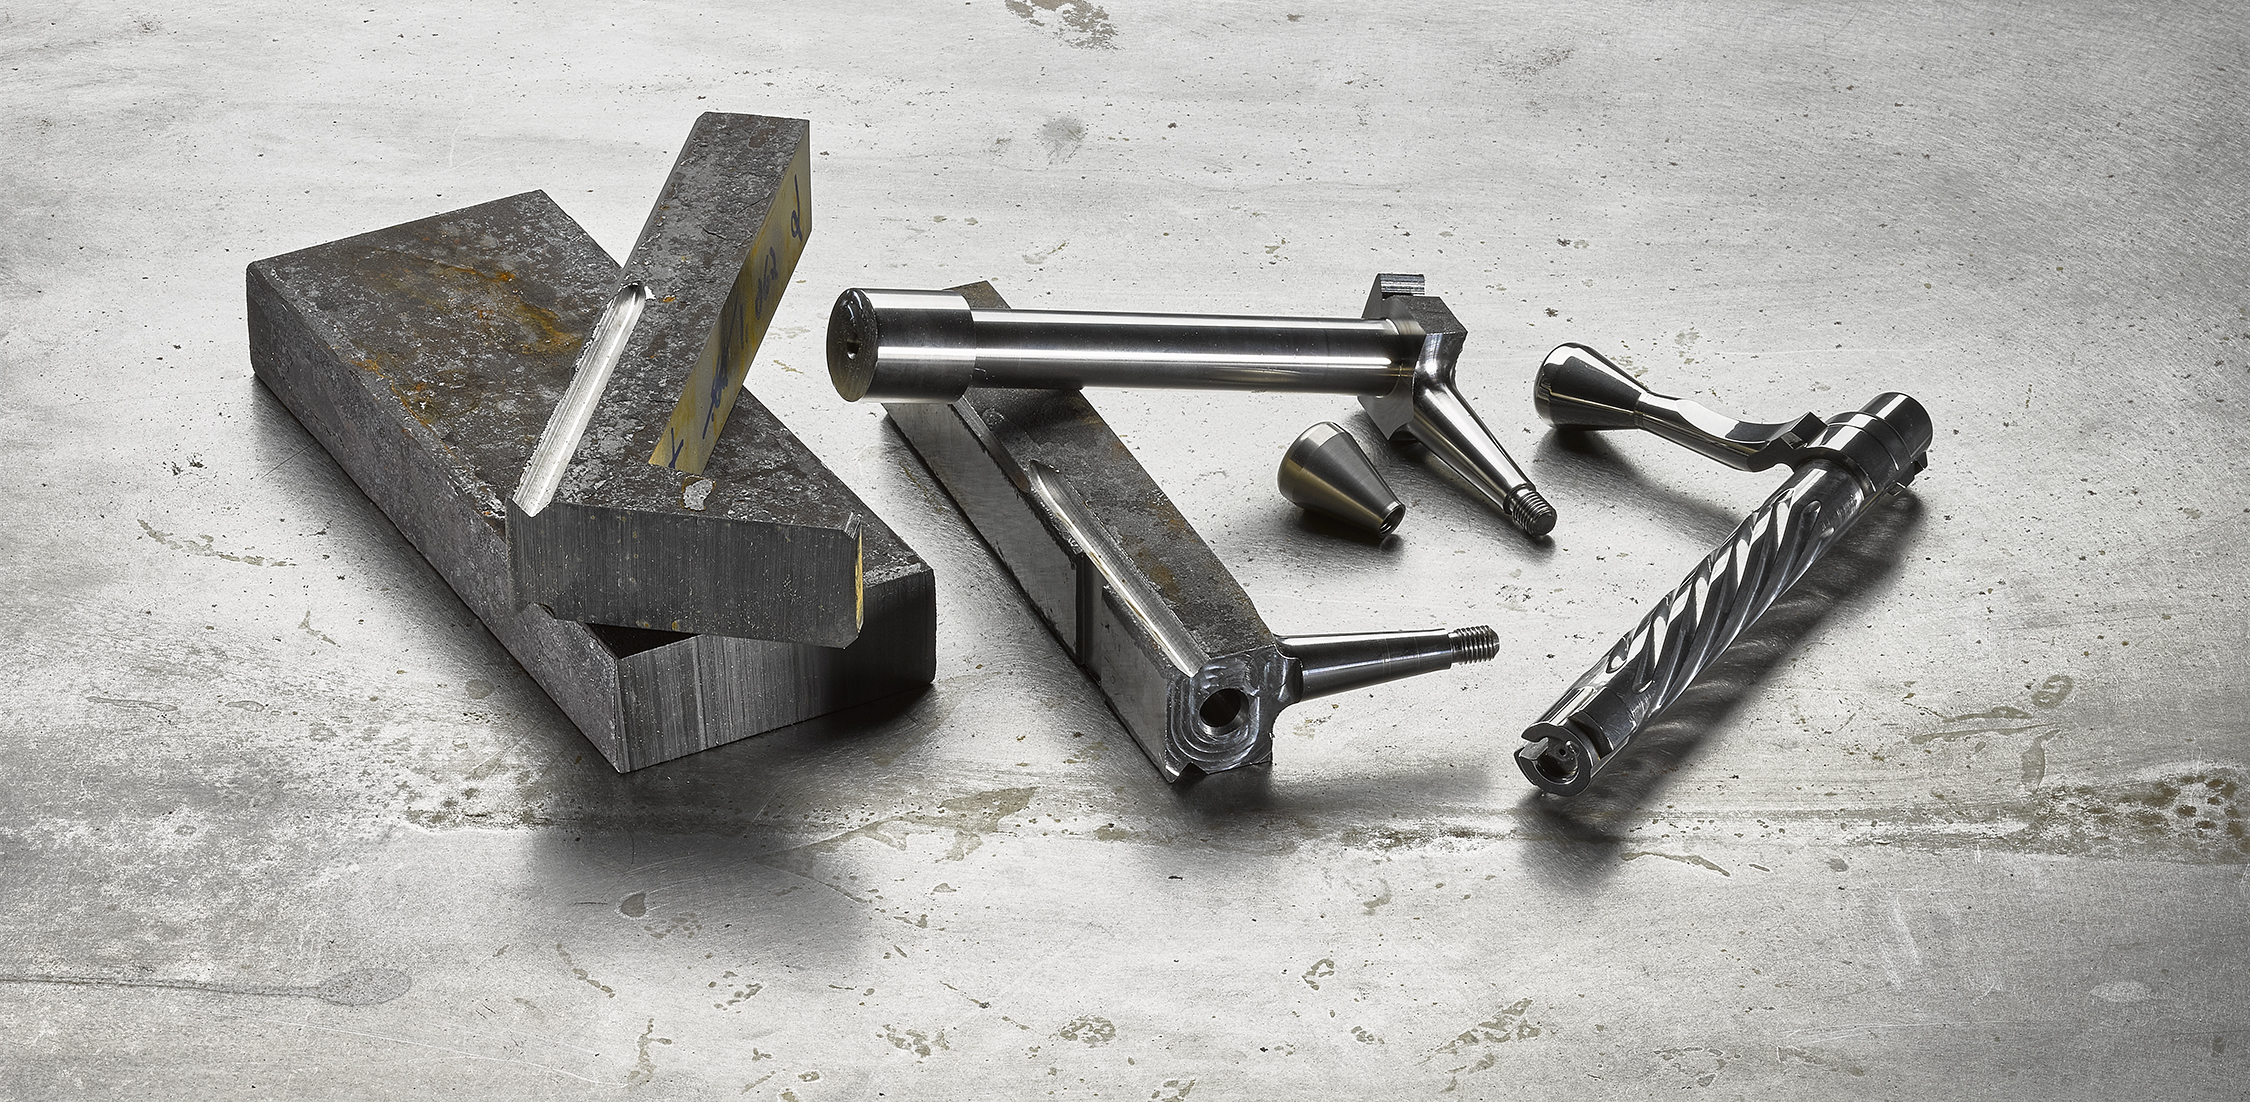 Bolts are also machined from solid steel